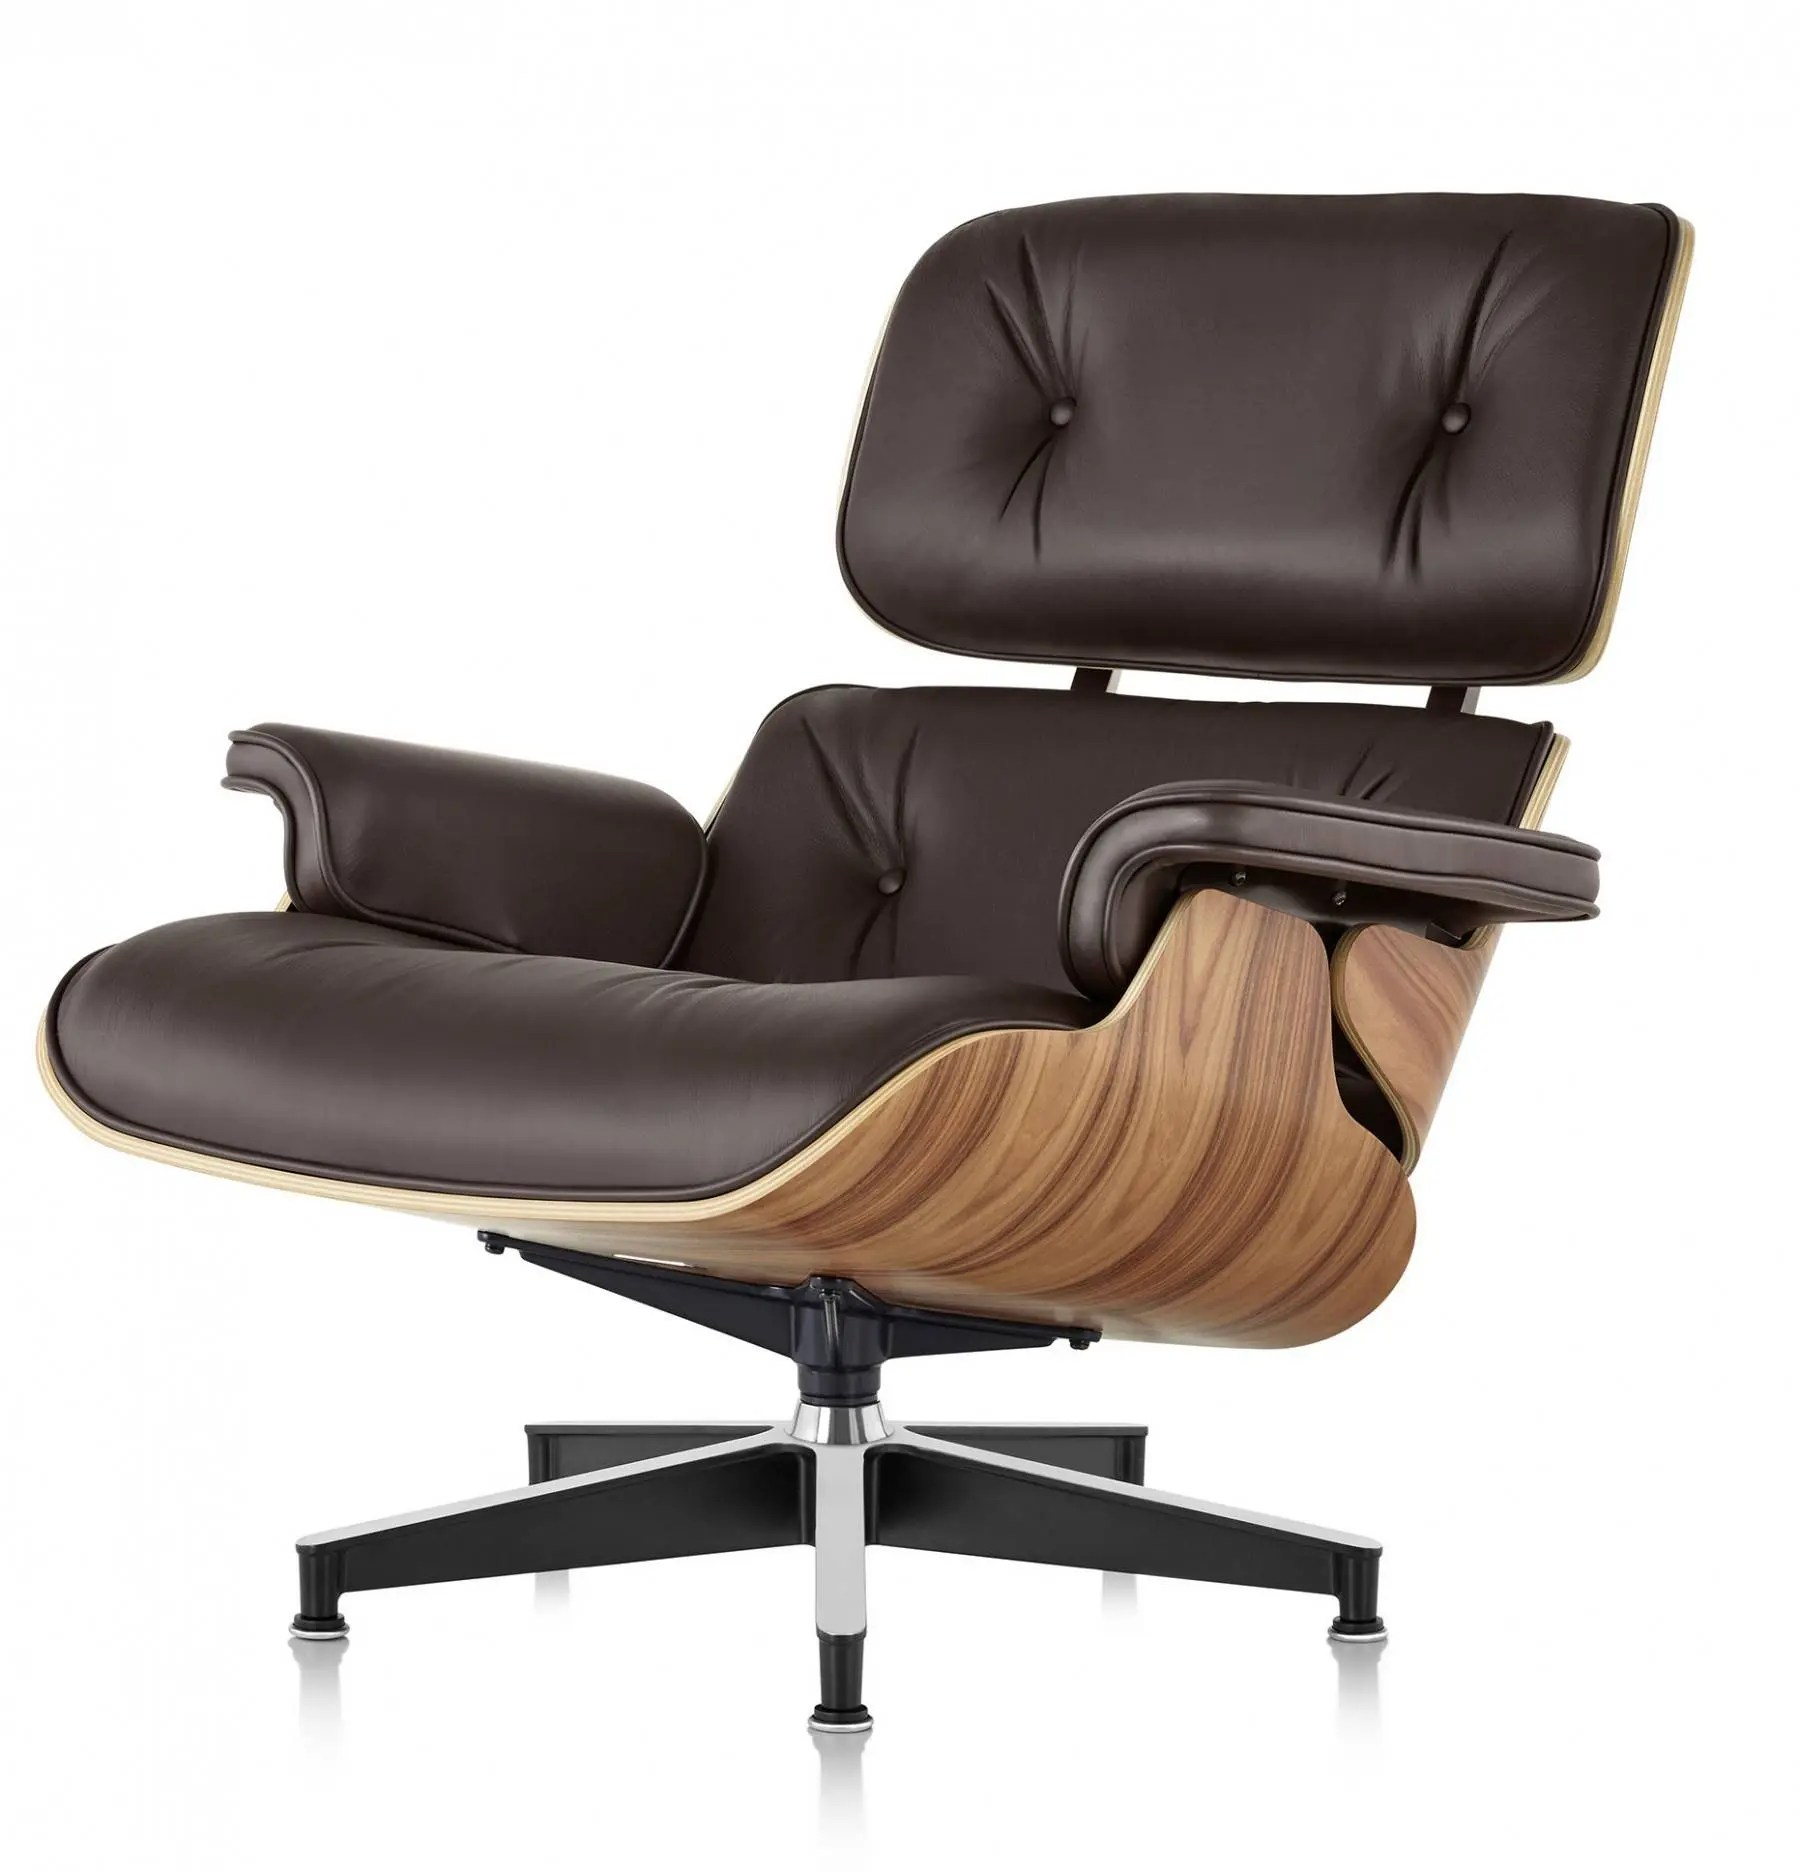 Original Eames Chair Interesting Eames Lounge Chair With Eames Lounche Chair